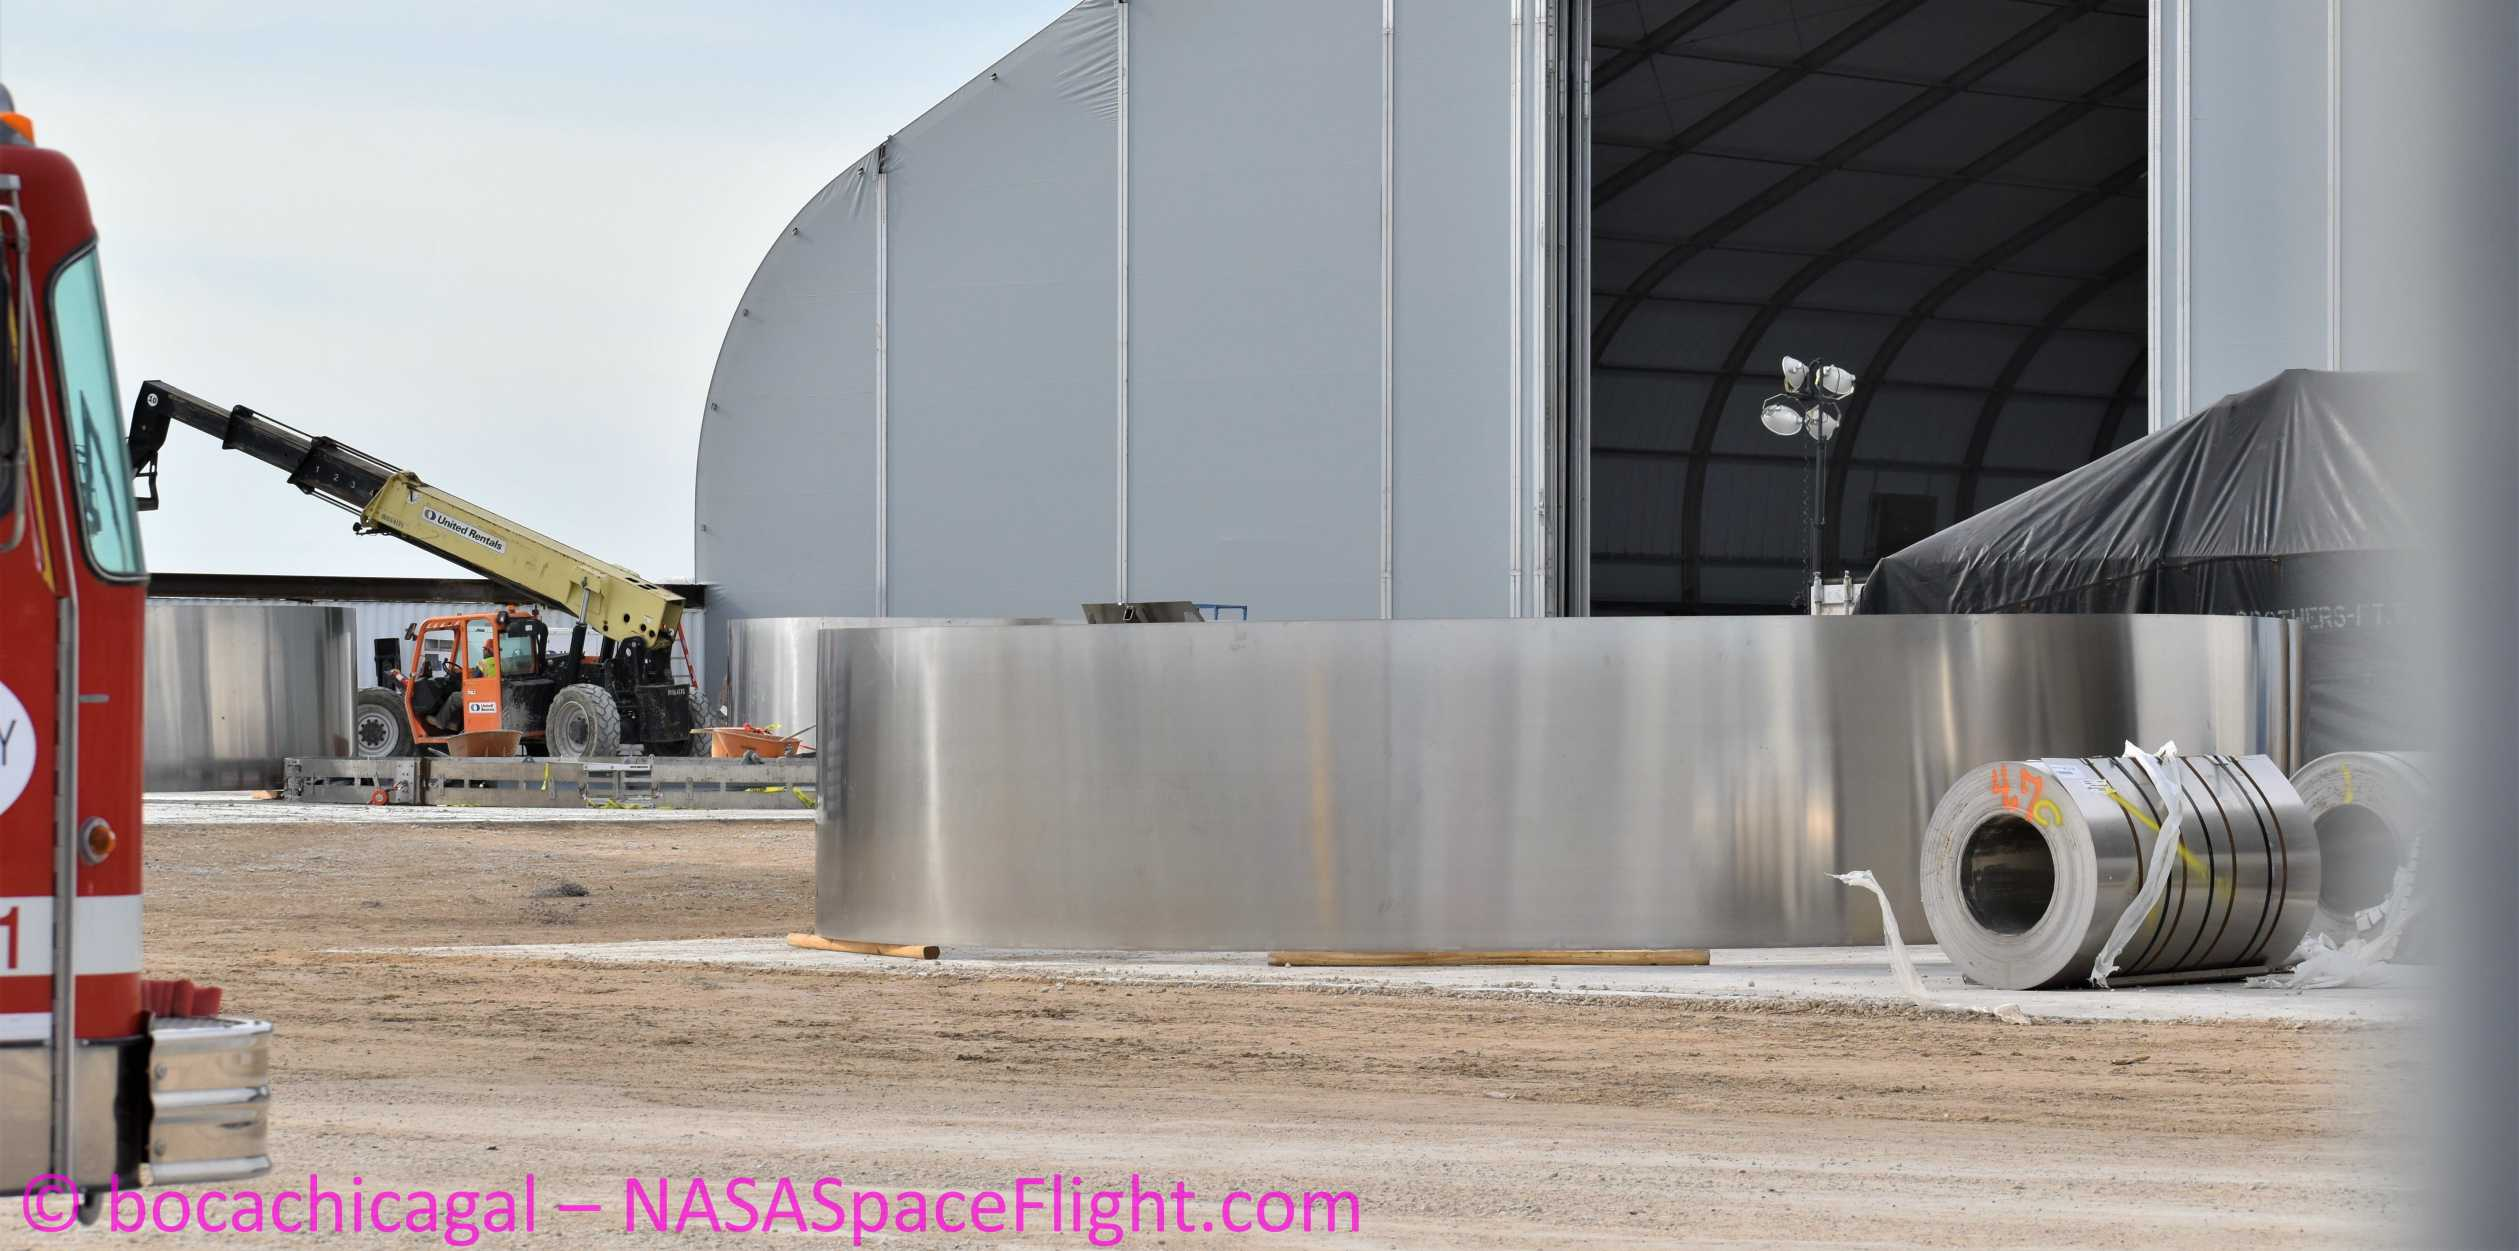 Starship Boca Chica 020320 (NASASpaceflight – bocachicagal) ring work 4 crop (c)